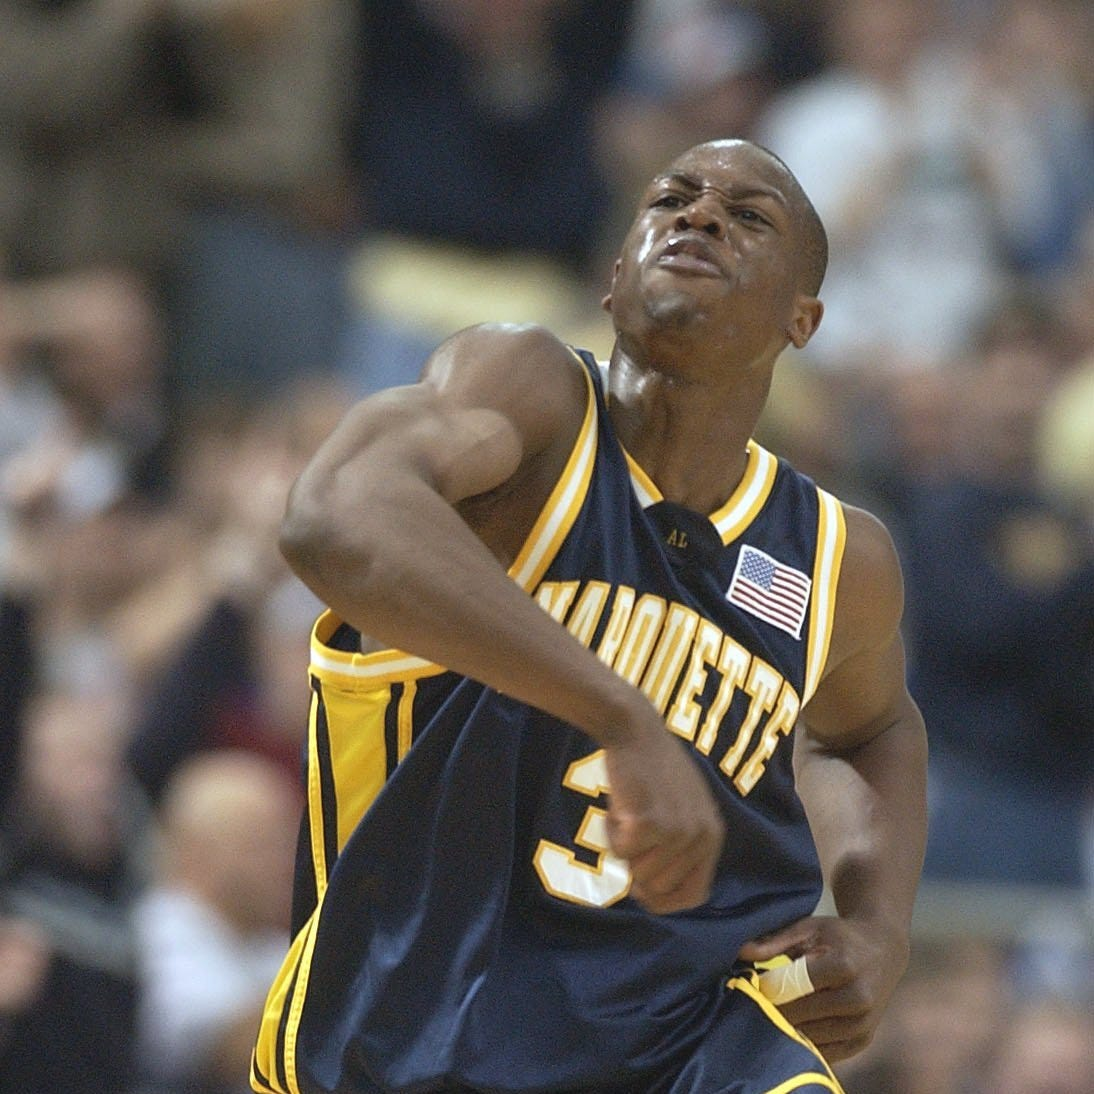 Dwyane Wade provided many memorable moments in his two seasons at Marquette